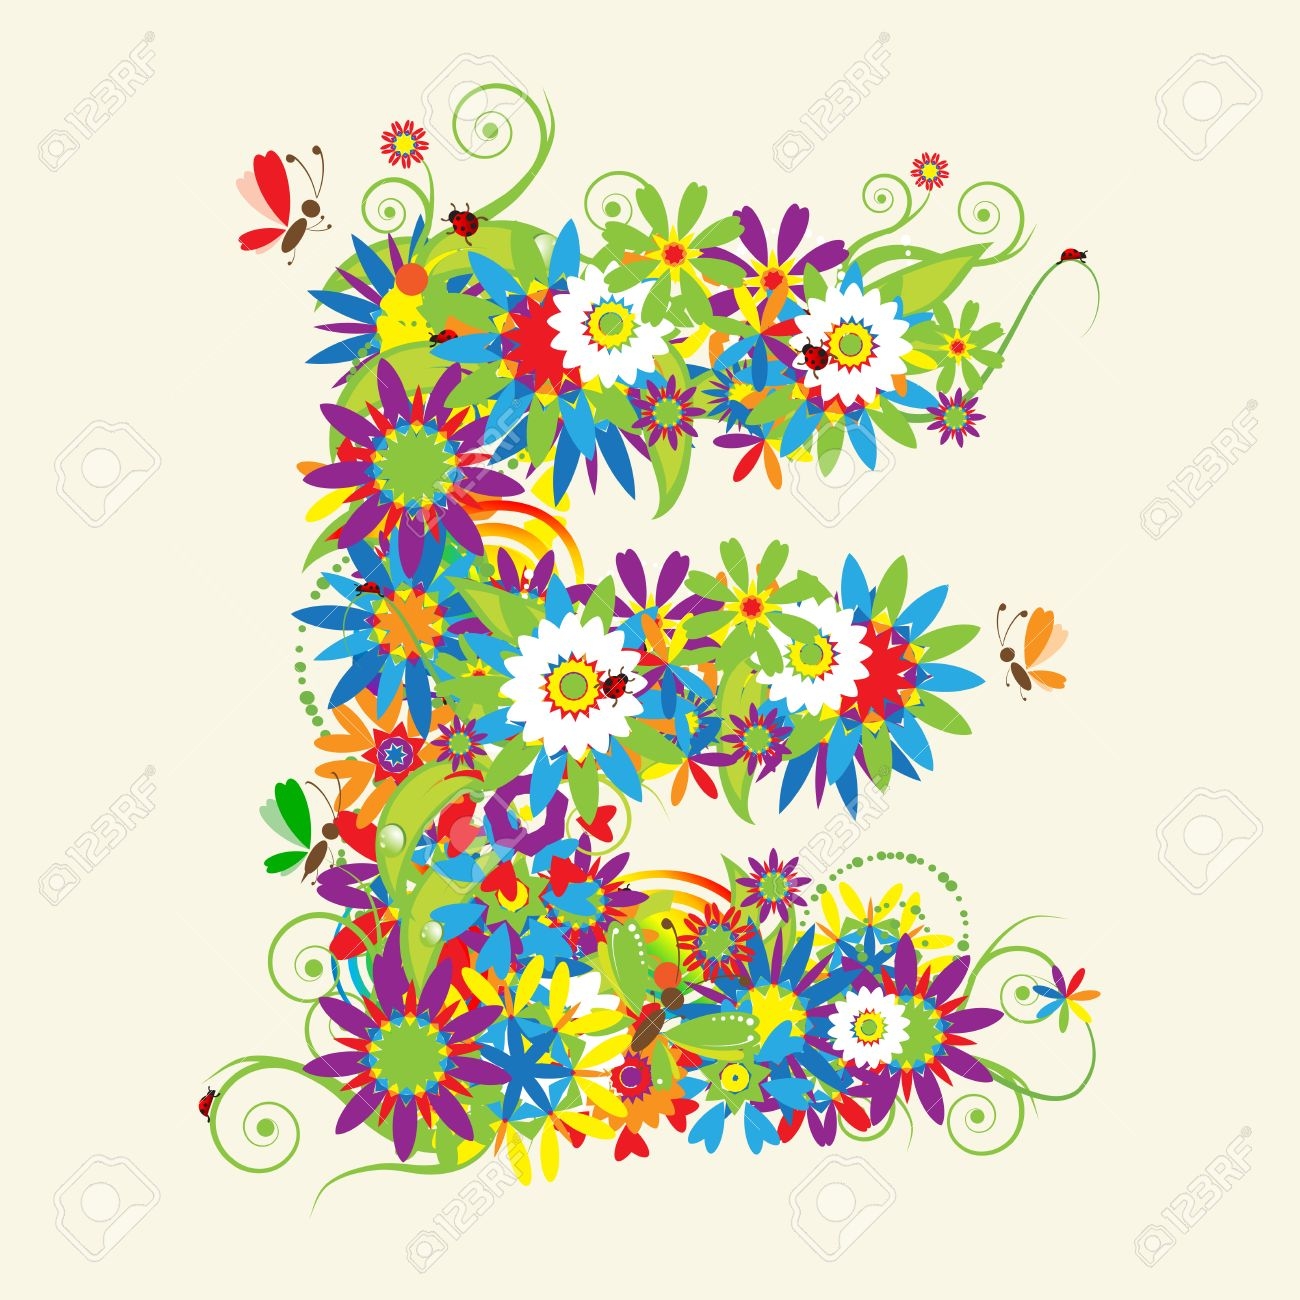 Letter E, floral design. See also letters in my gallery Stock Vector - 5268130